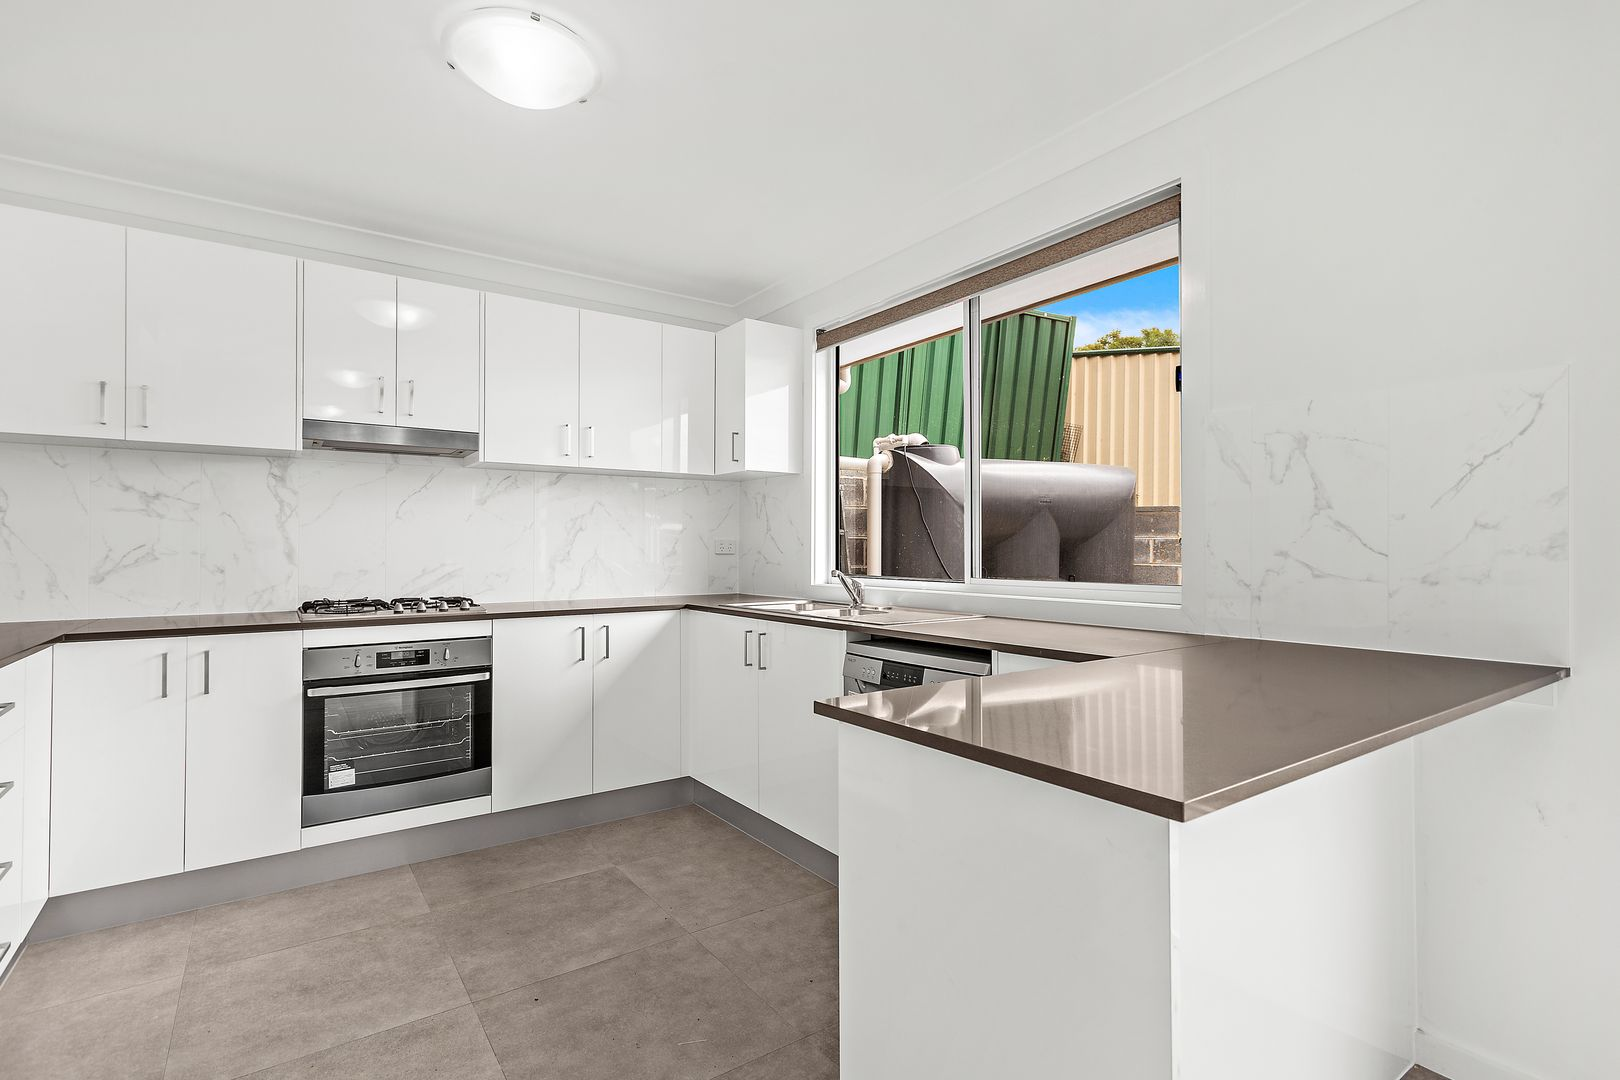 2/55 Stanleigh Crescent, West Wollongong NSW 2500, Image 0